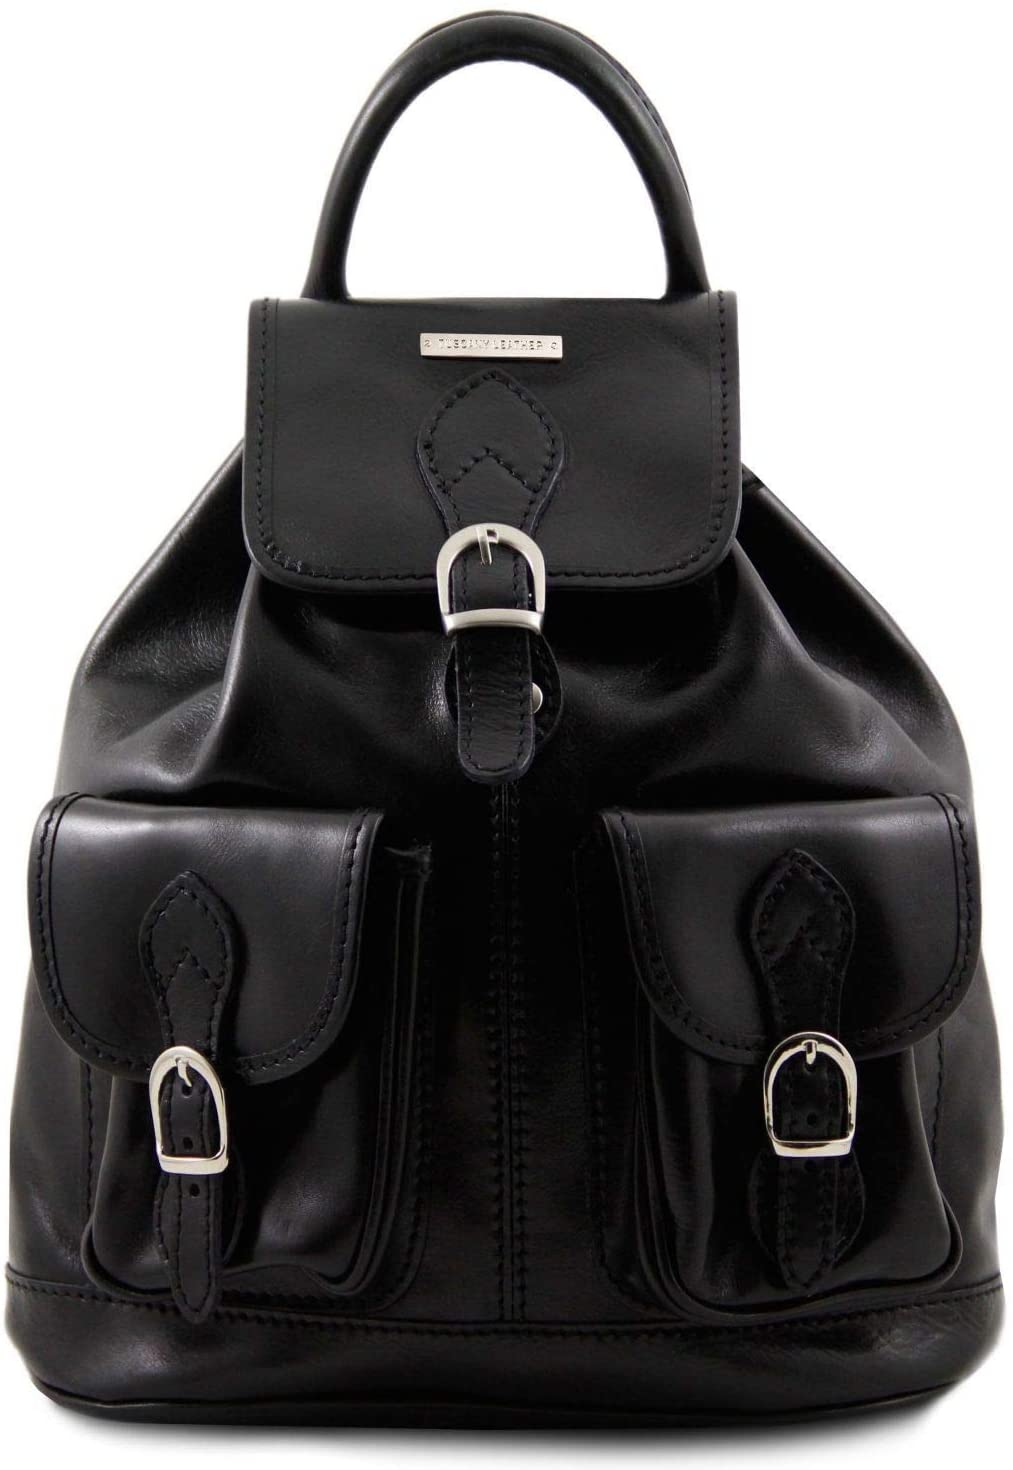 Tuscany Leather - Tokyo - Leather Backpack Black - TL9035/2